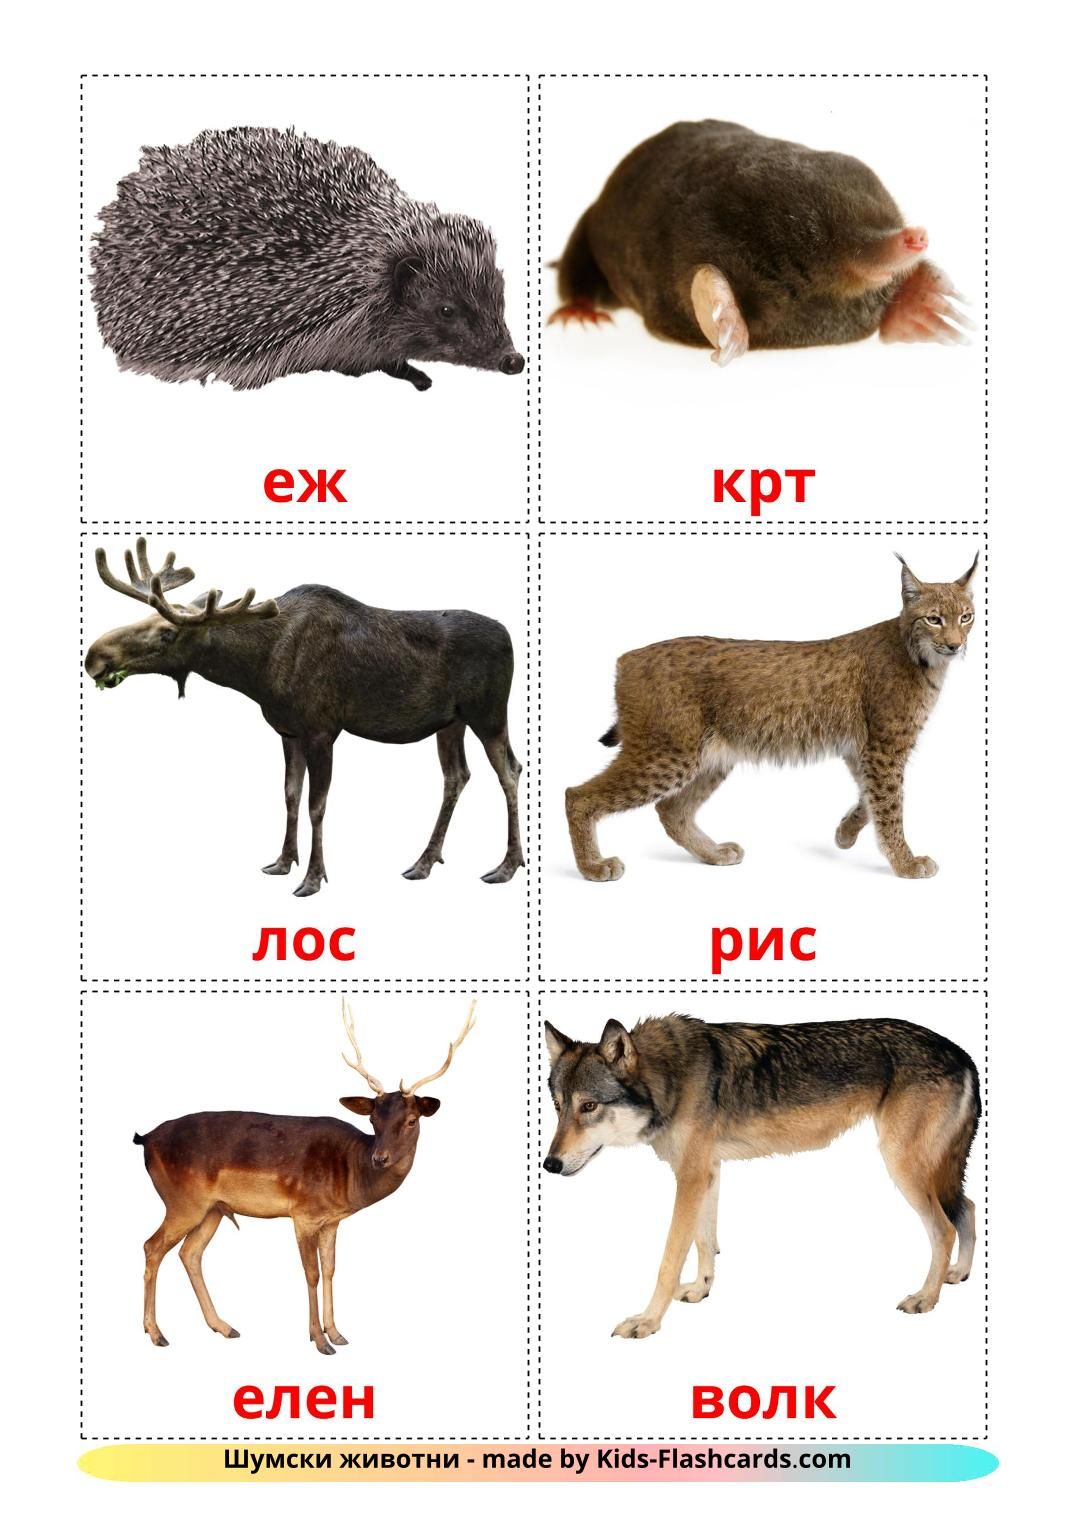 Forest animals - 22 Free Printable macedonian Flashcards